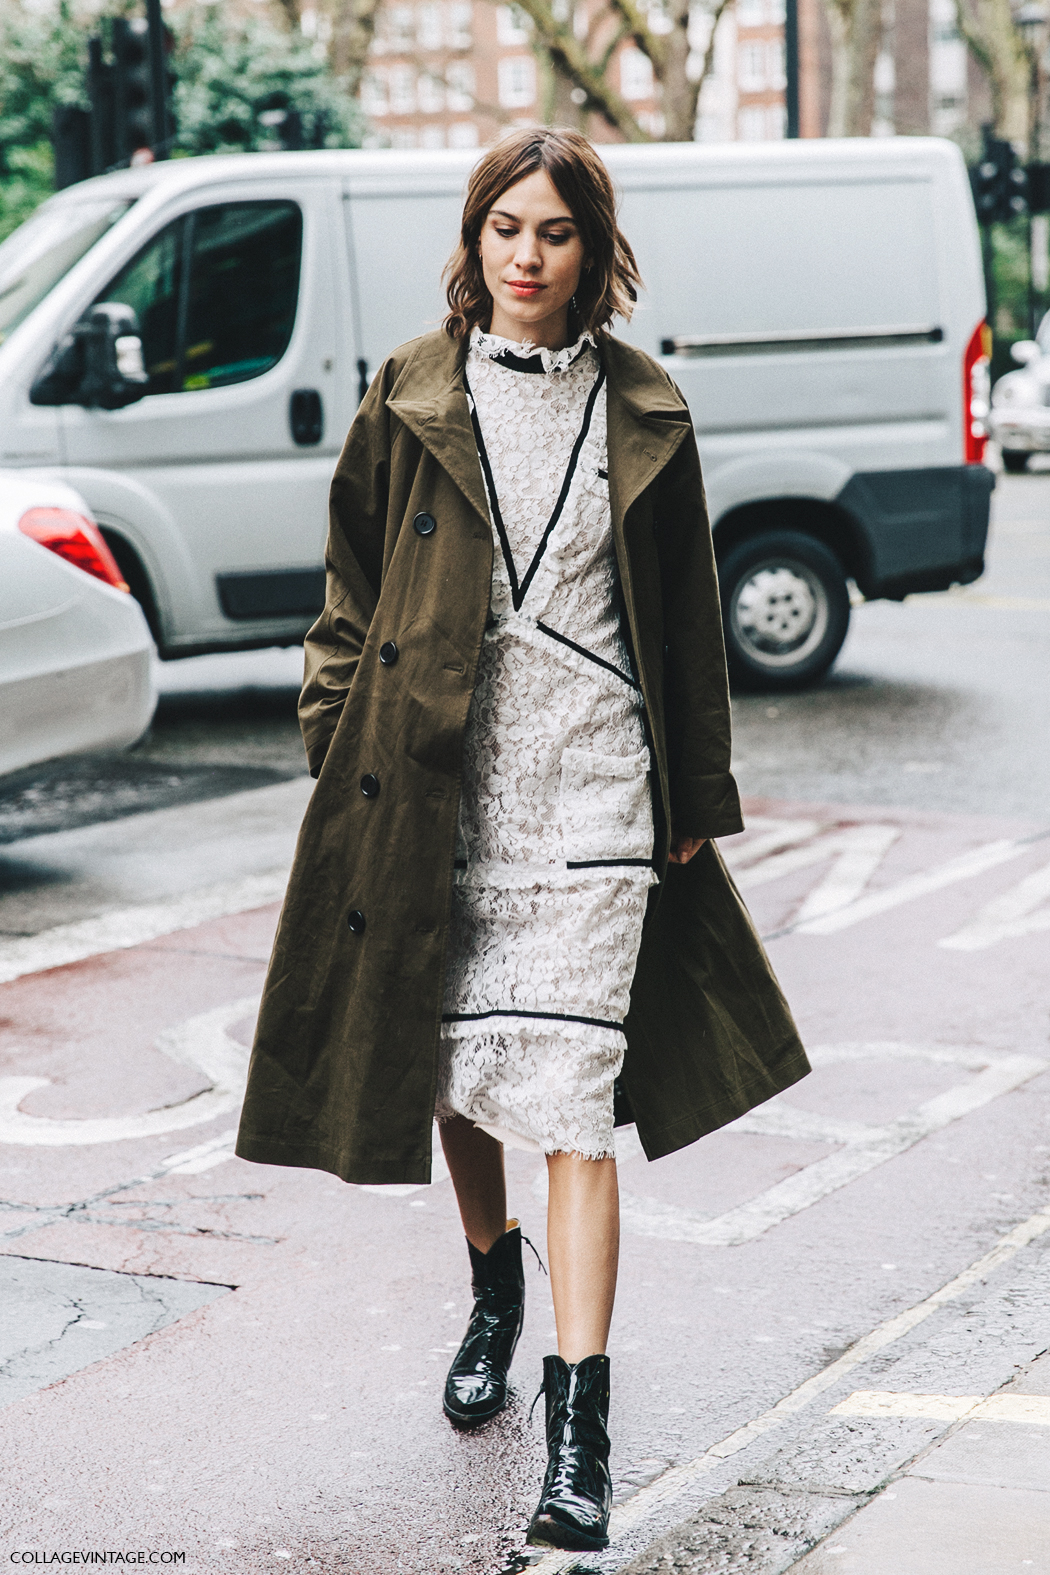 LFW-London_Fashion_Week_Fall_16-Street_Style-Collage_Vintage-Alexa_Chung-Trench_Coat-Cowboy_Boots-Erdem-Lace_Dress-1